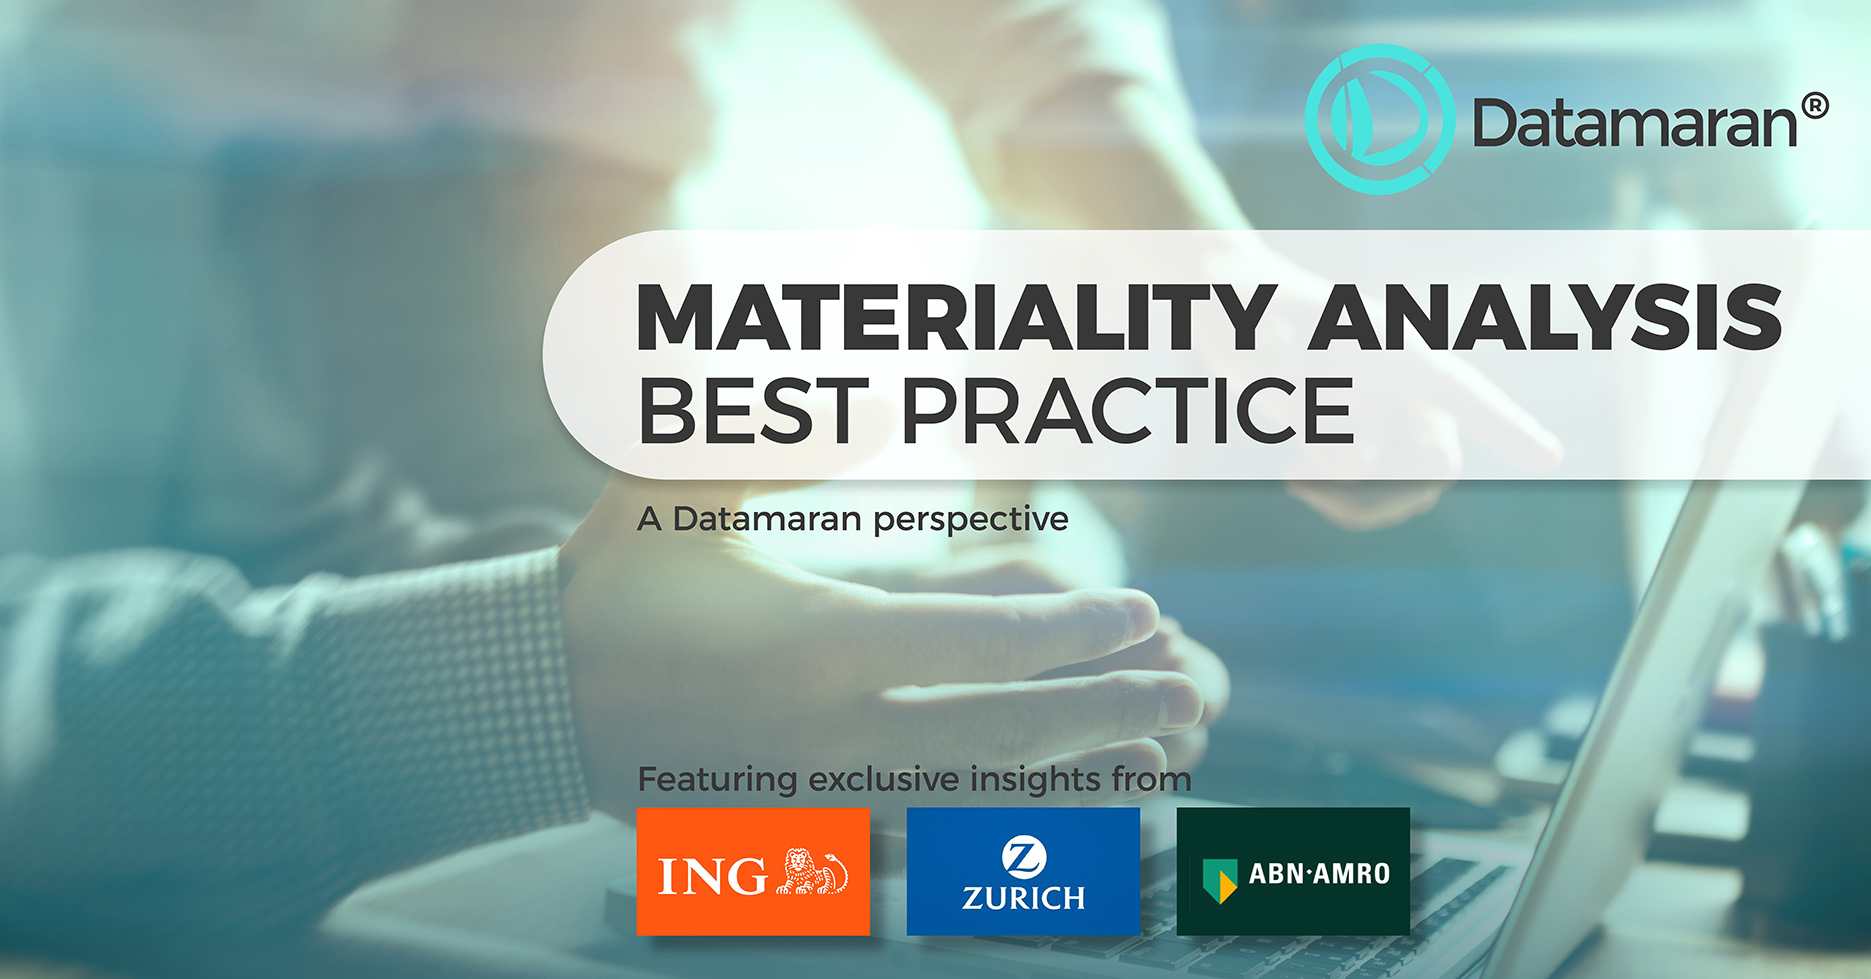 Materiality analysis best practice